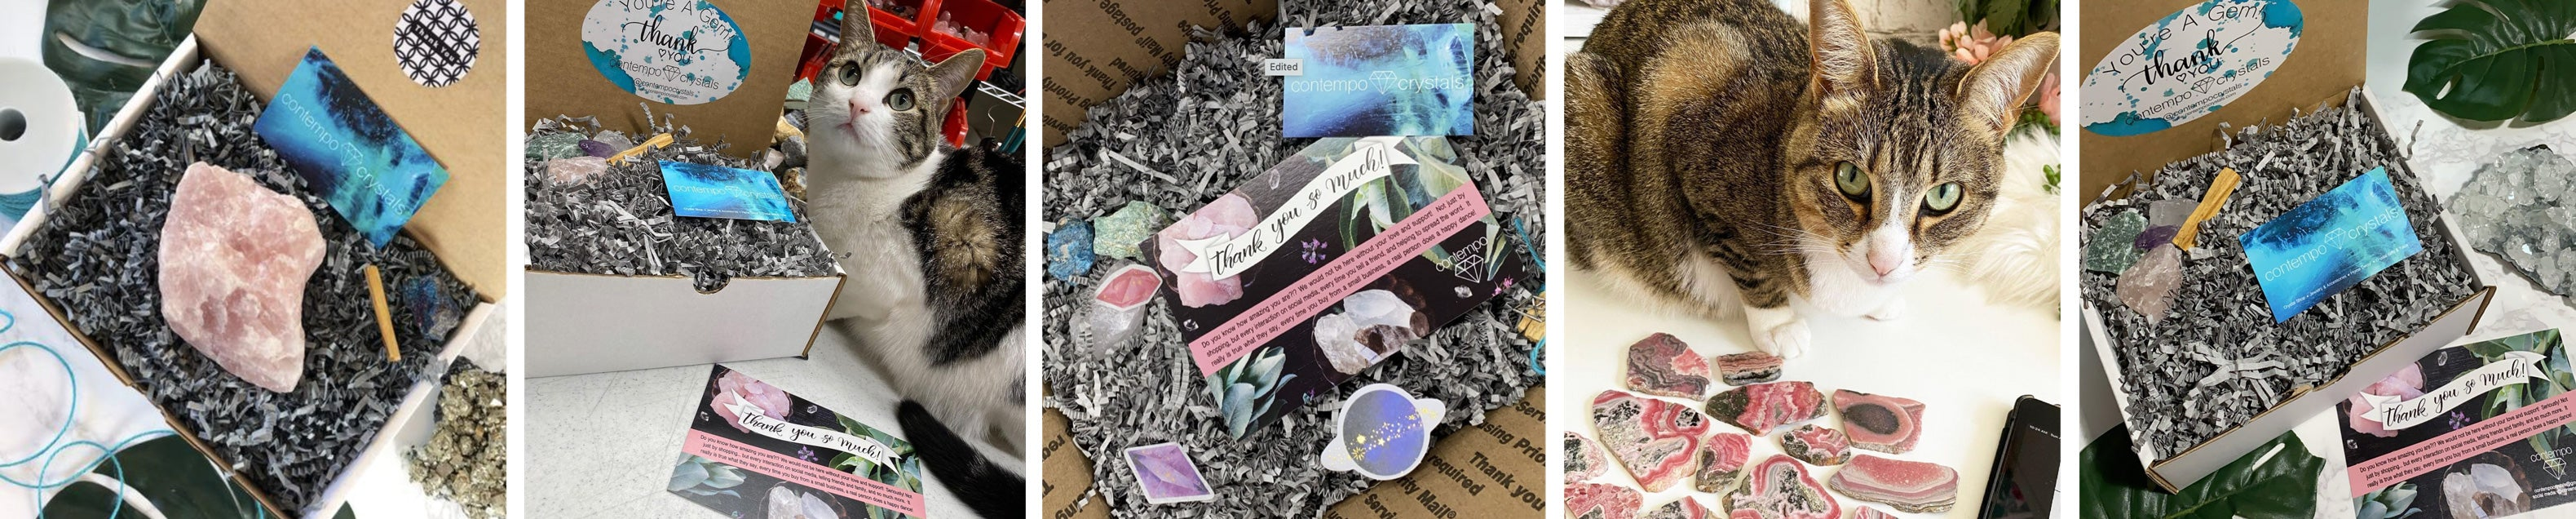 Contempo Crystals Online Crystal Mineral Rock Shop with Cute Cats and Packaging